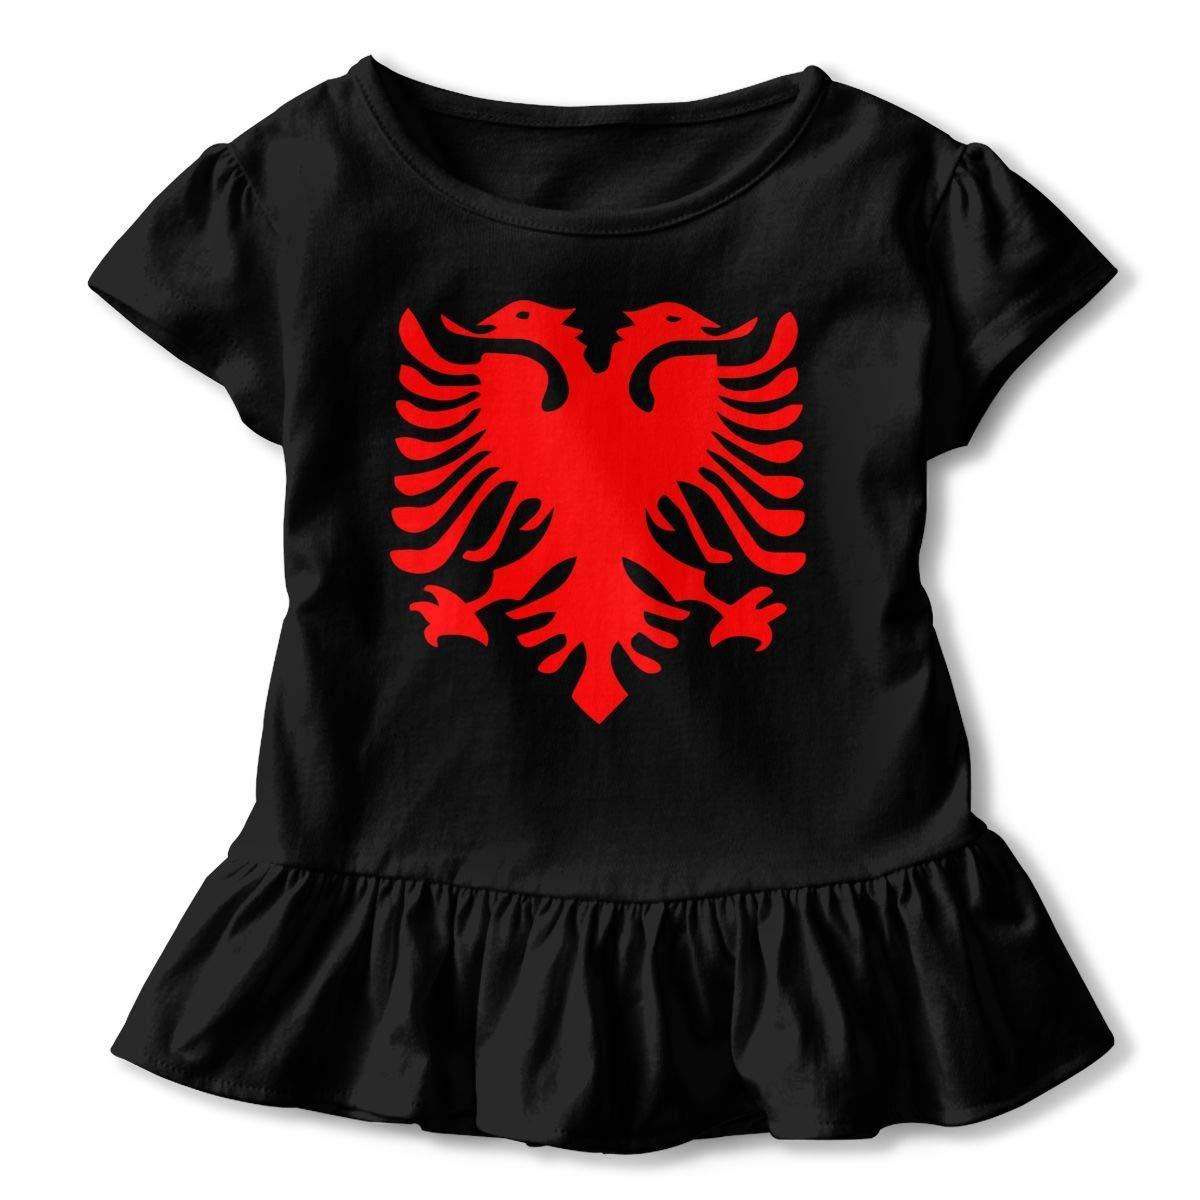 PMsunglasses Short Sleeve Albanian Flag T-Shirts for Kids Fashion Blouse Clothes with Falbala 2-6T